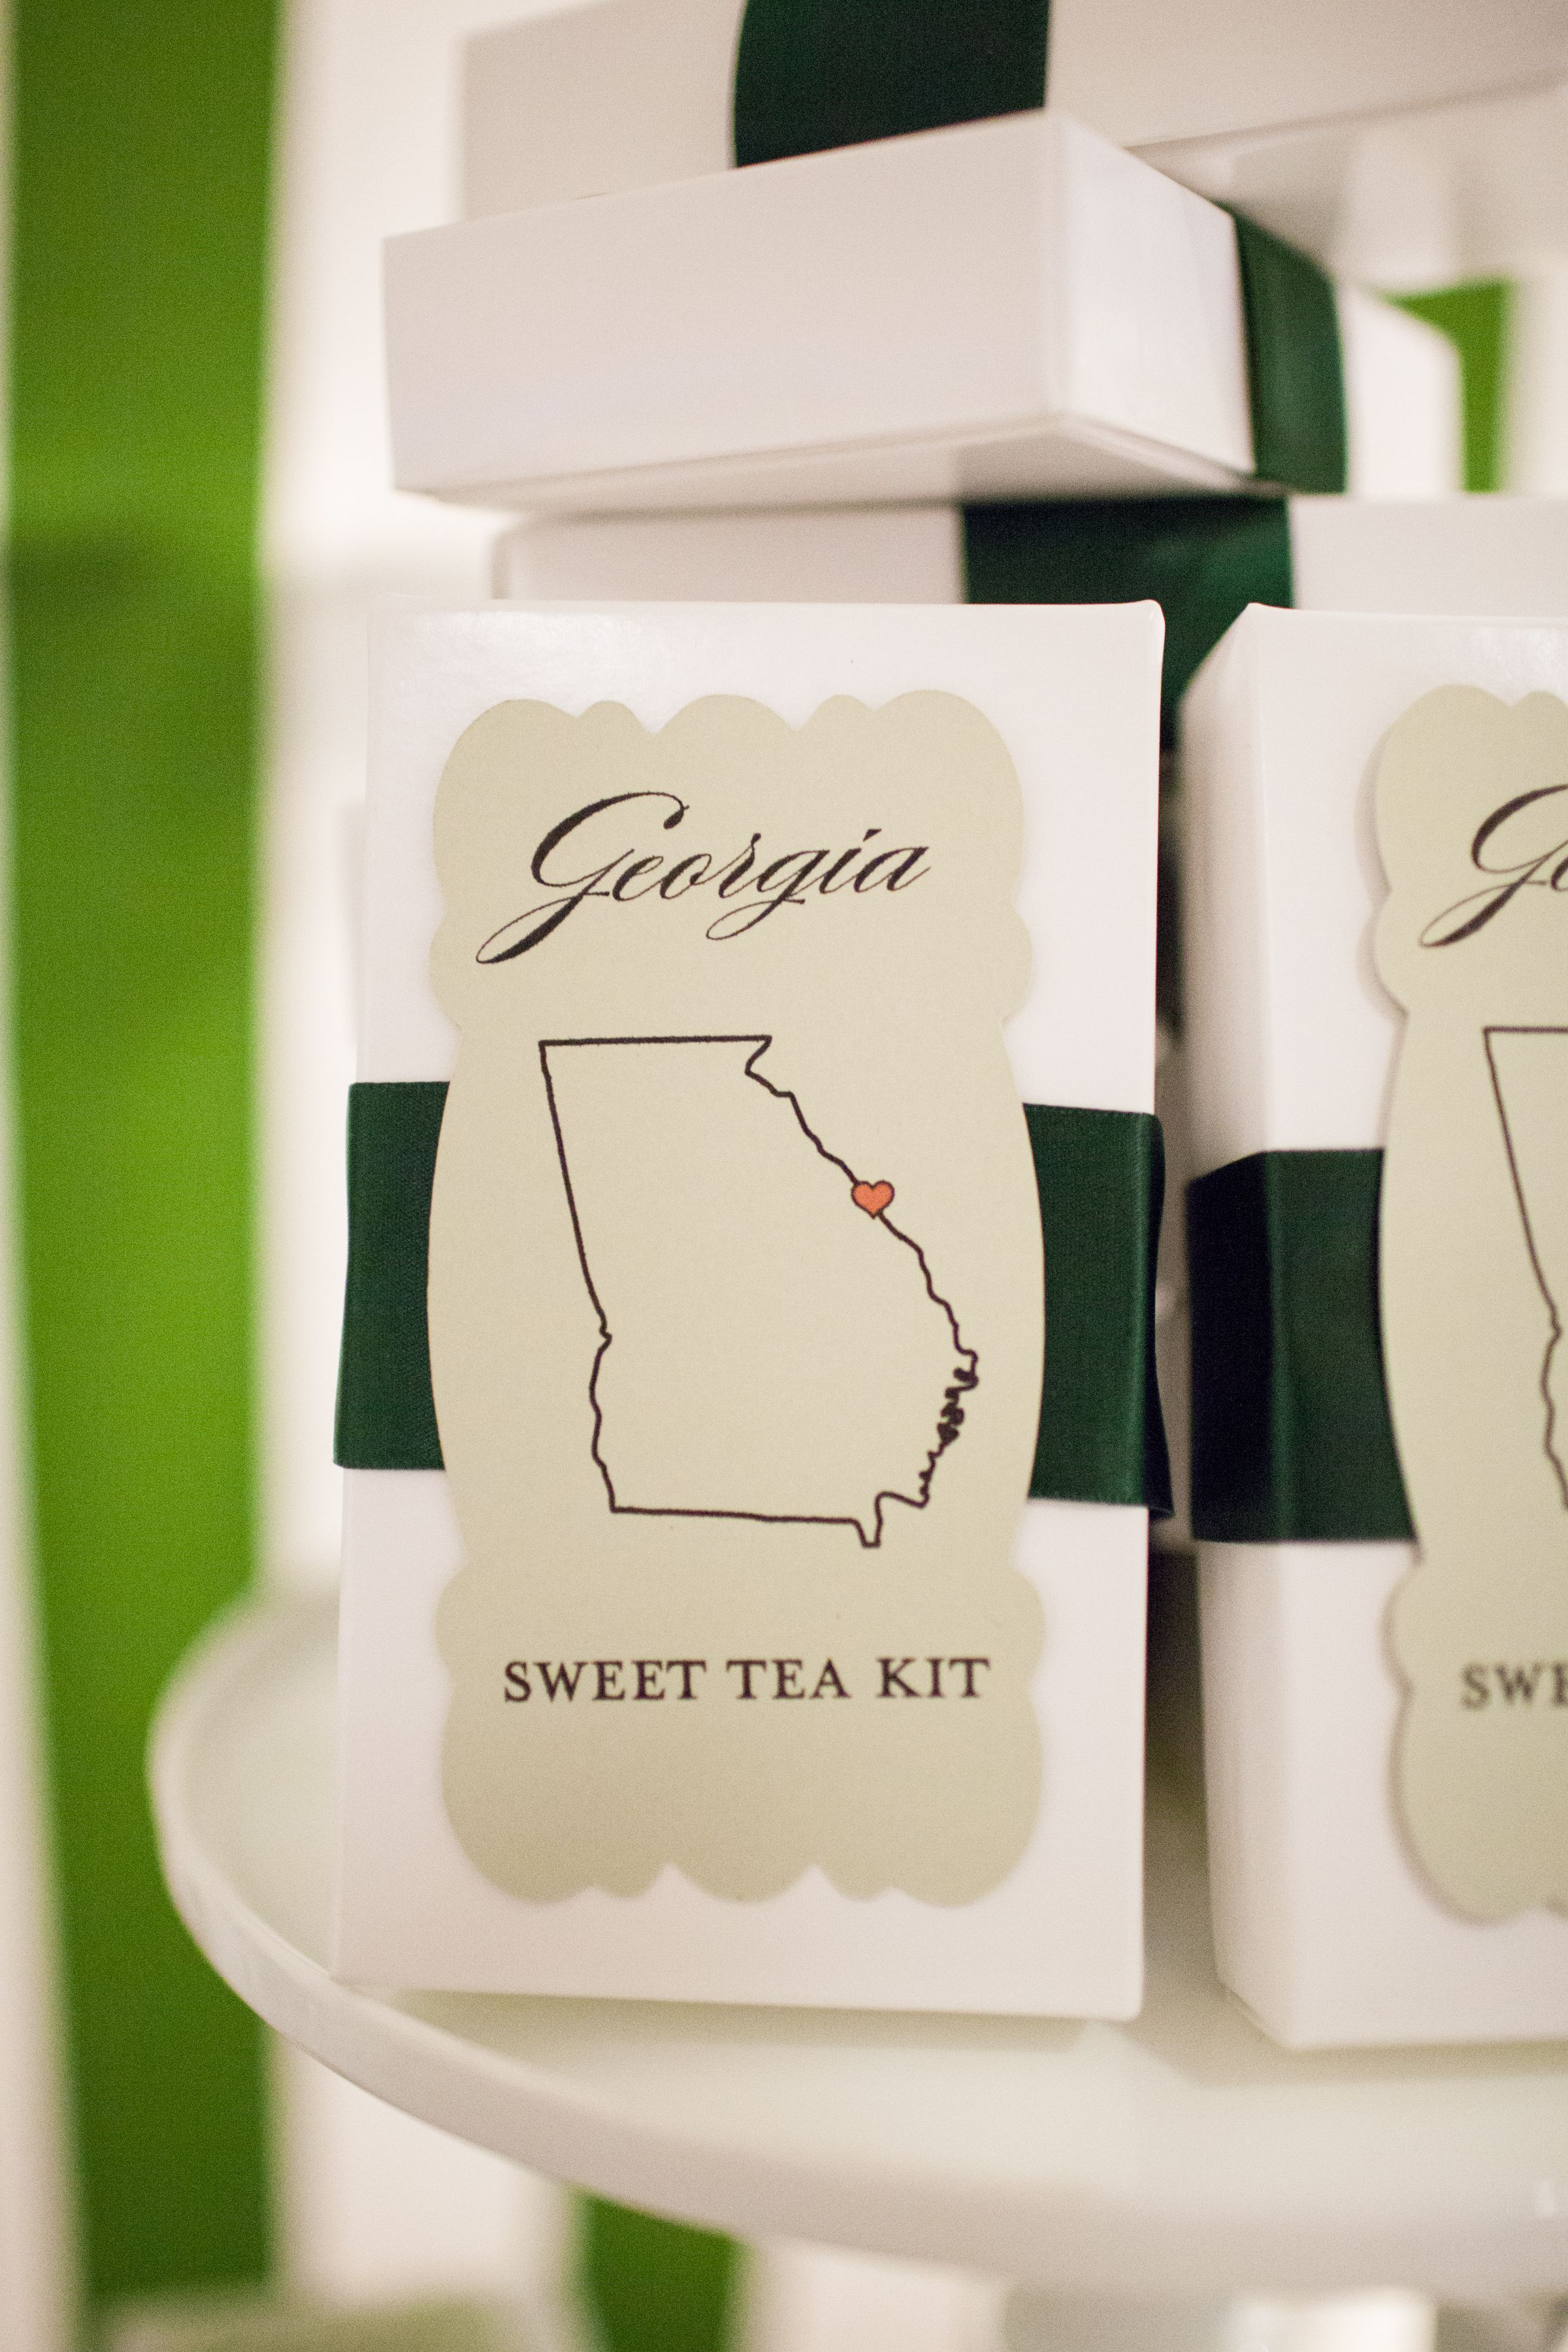 Favors - Georgia Sweet Tea Kit | Charlotte Wedding featured in The ...